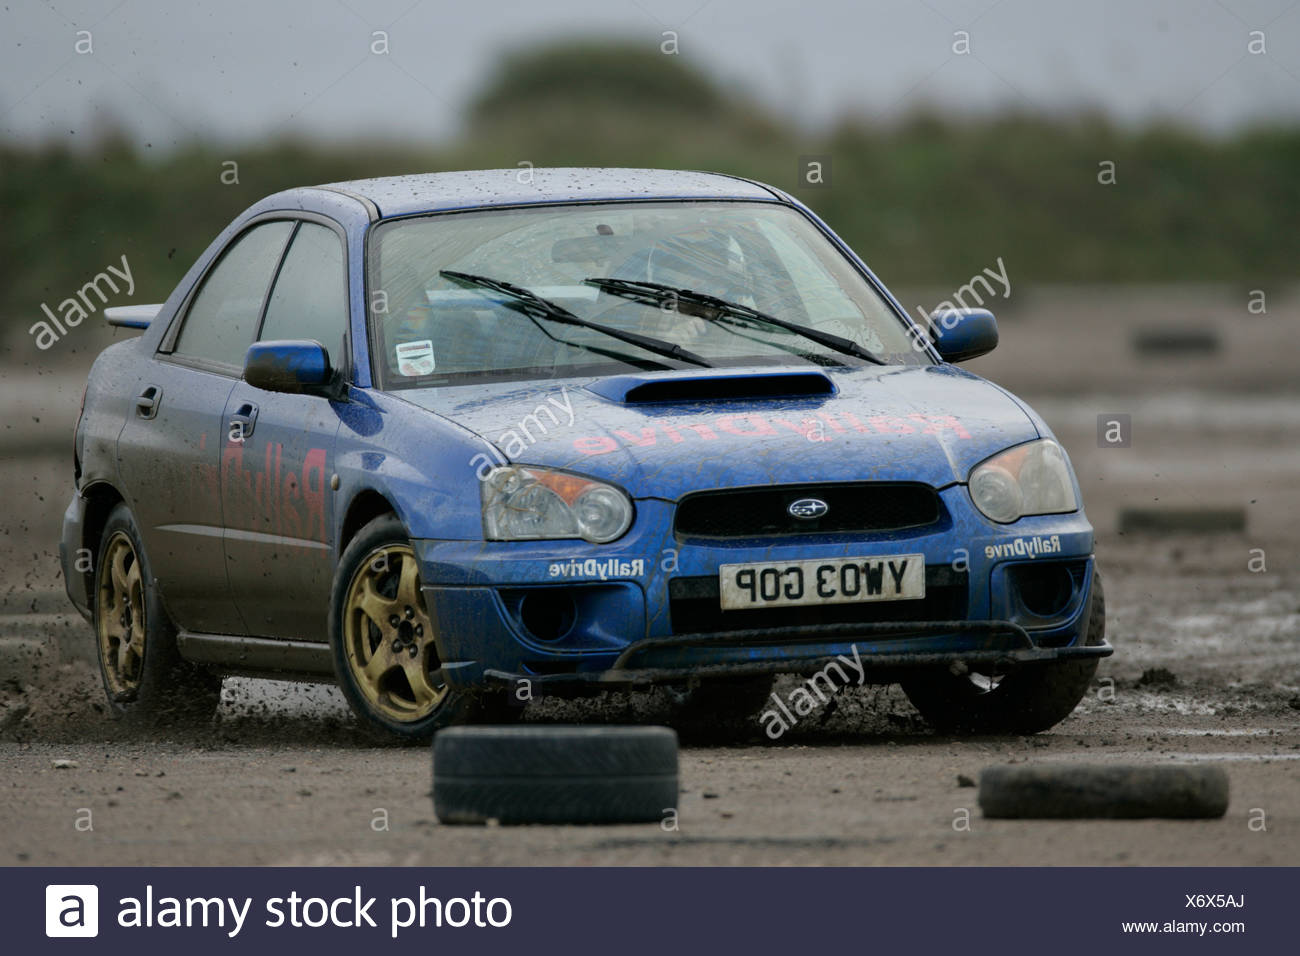 Rally Drive Driving Stock Photos & Rally Drive Driving Stock Images ...